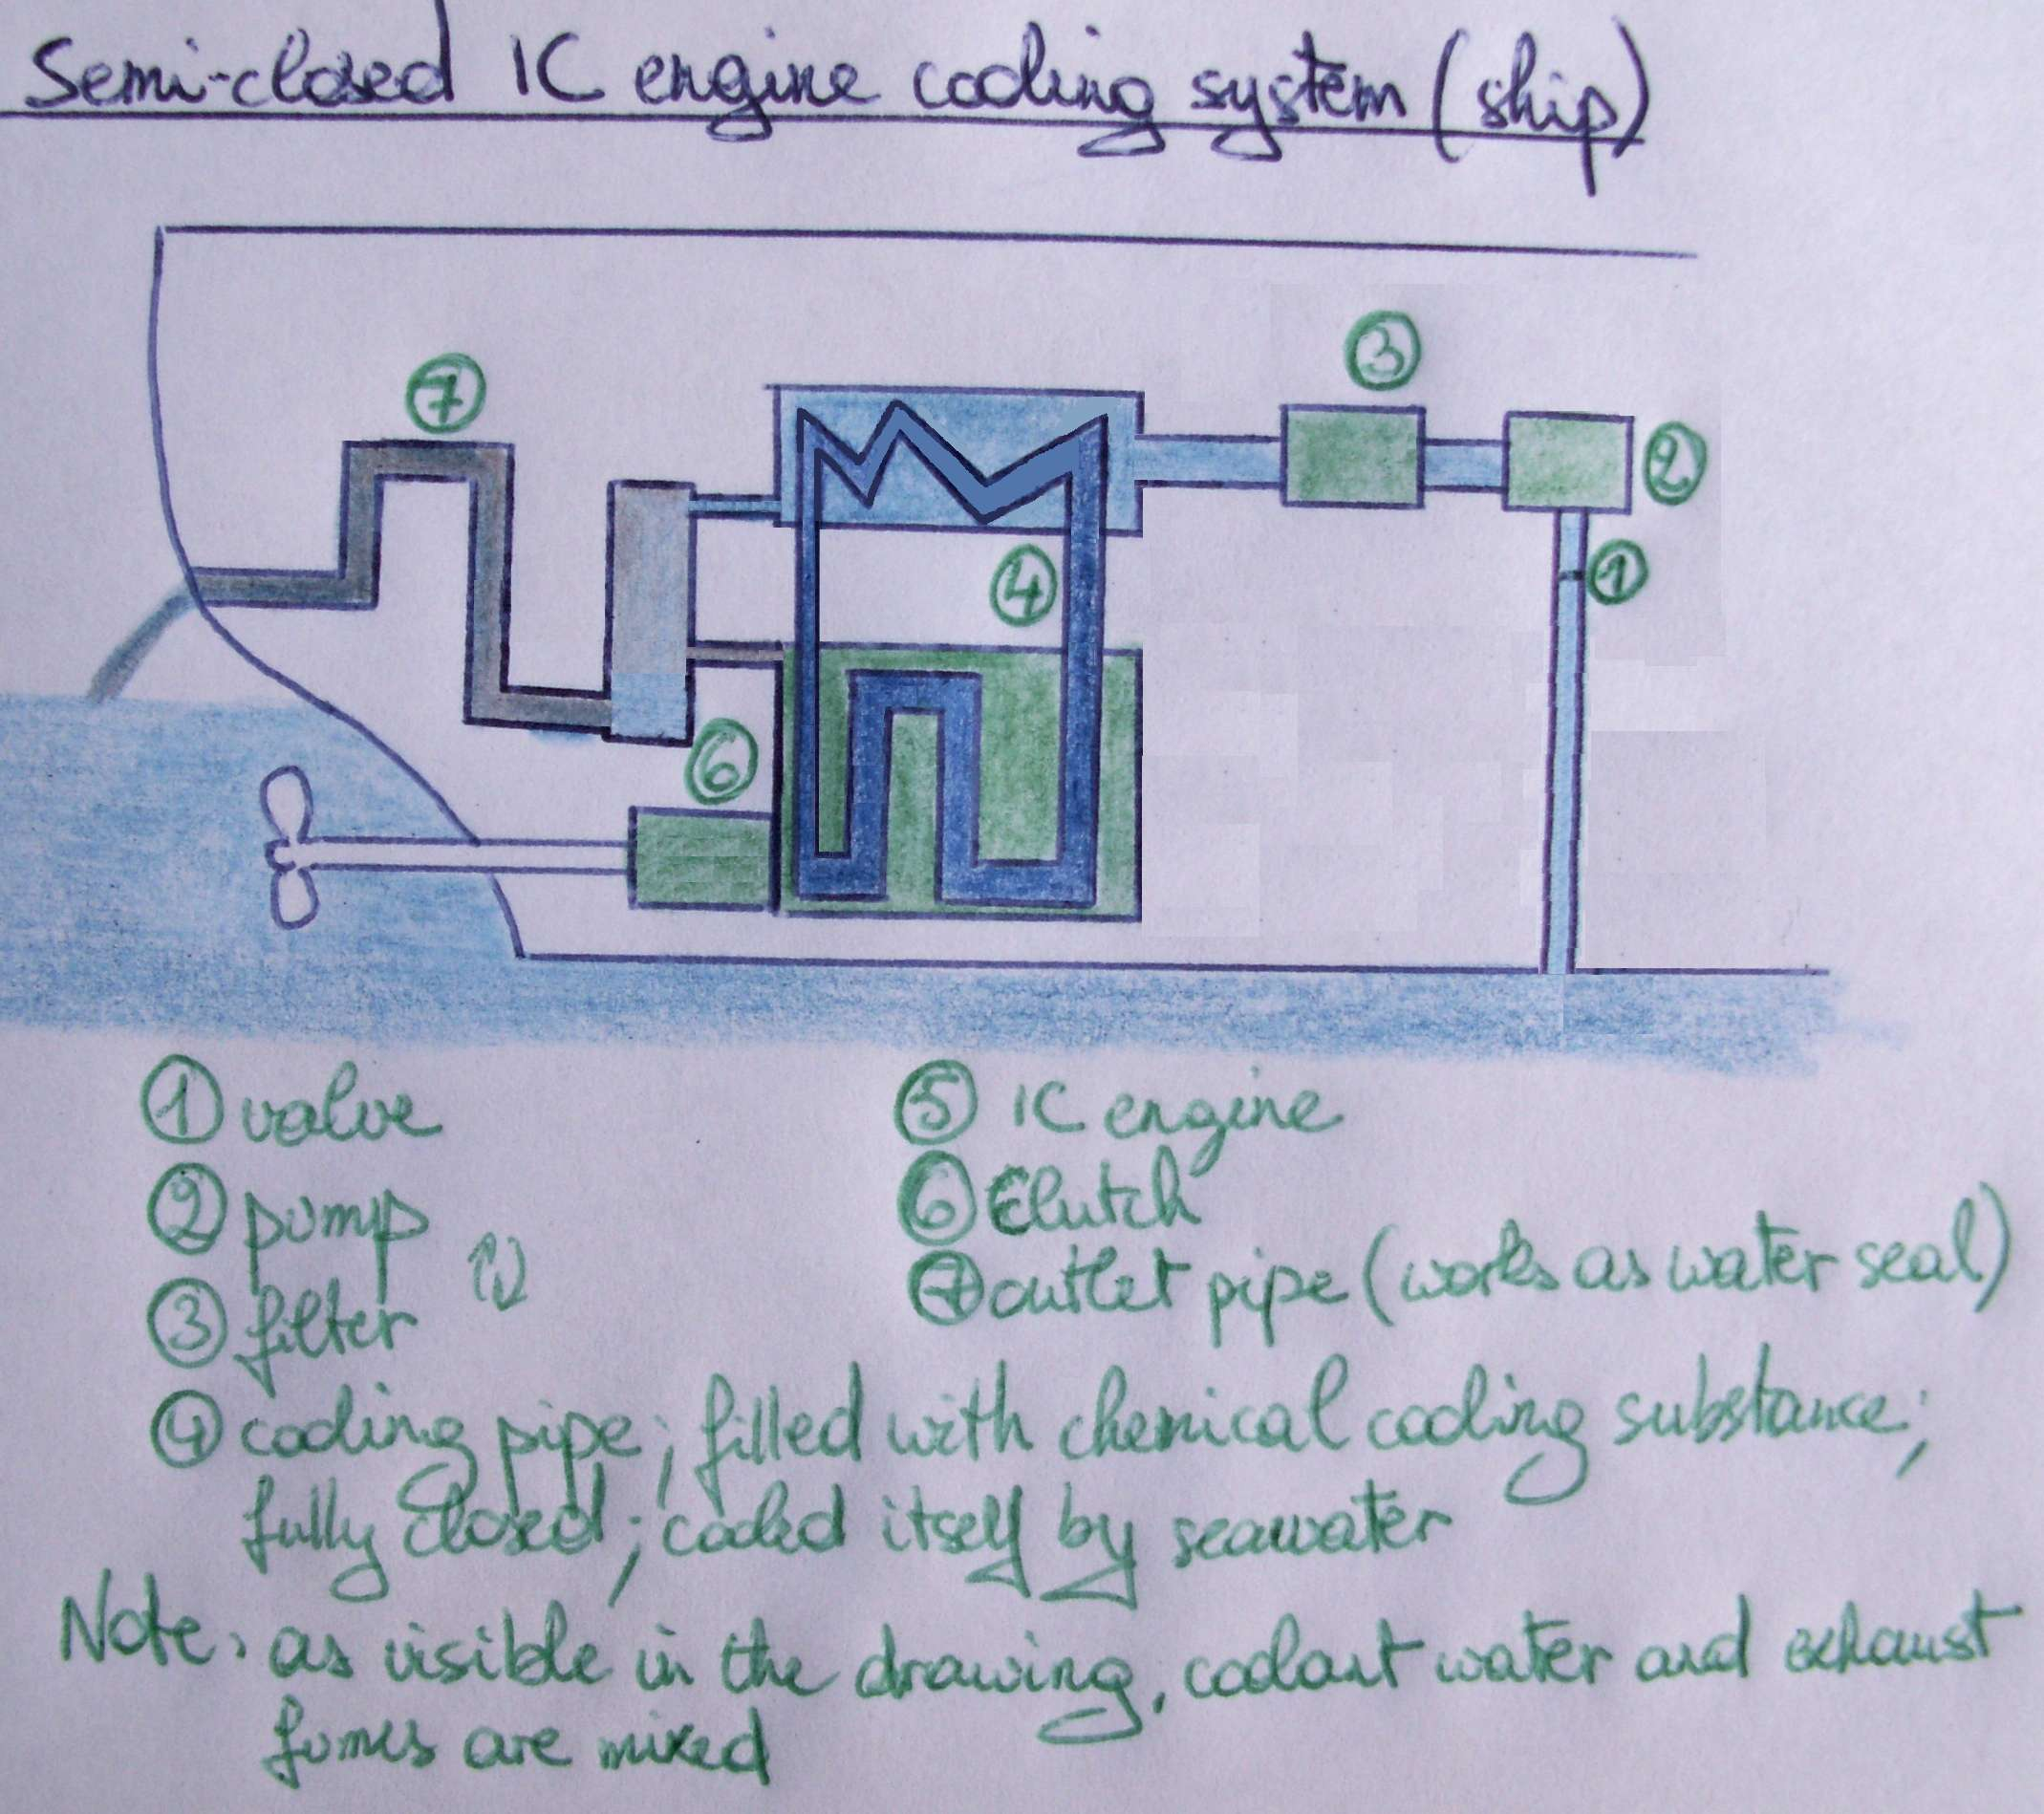 FileSemiclosed IC engine cooling system shipJPG Wikimedia – Internal Combustion Engine Cooling System Diagram